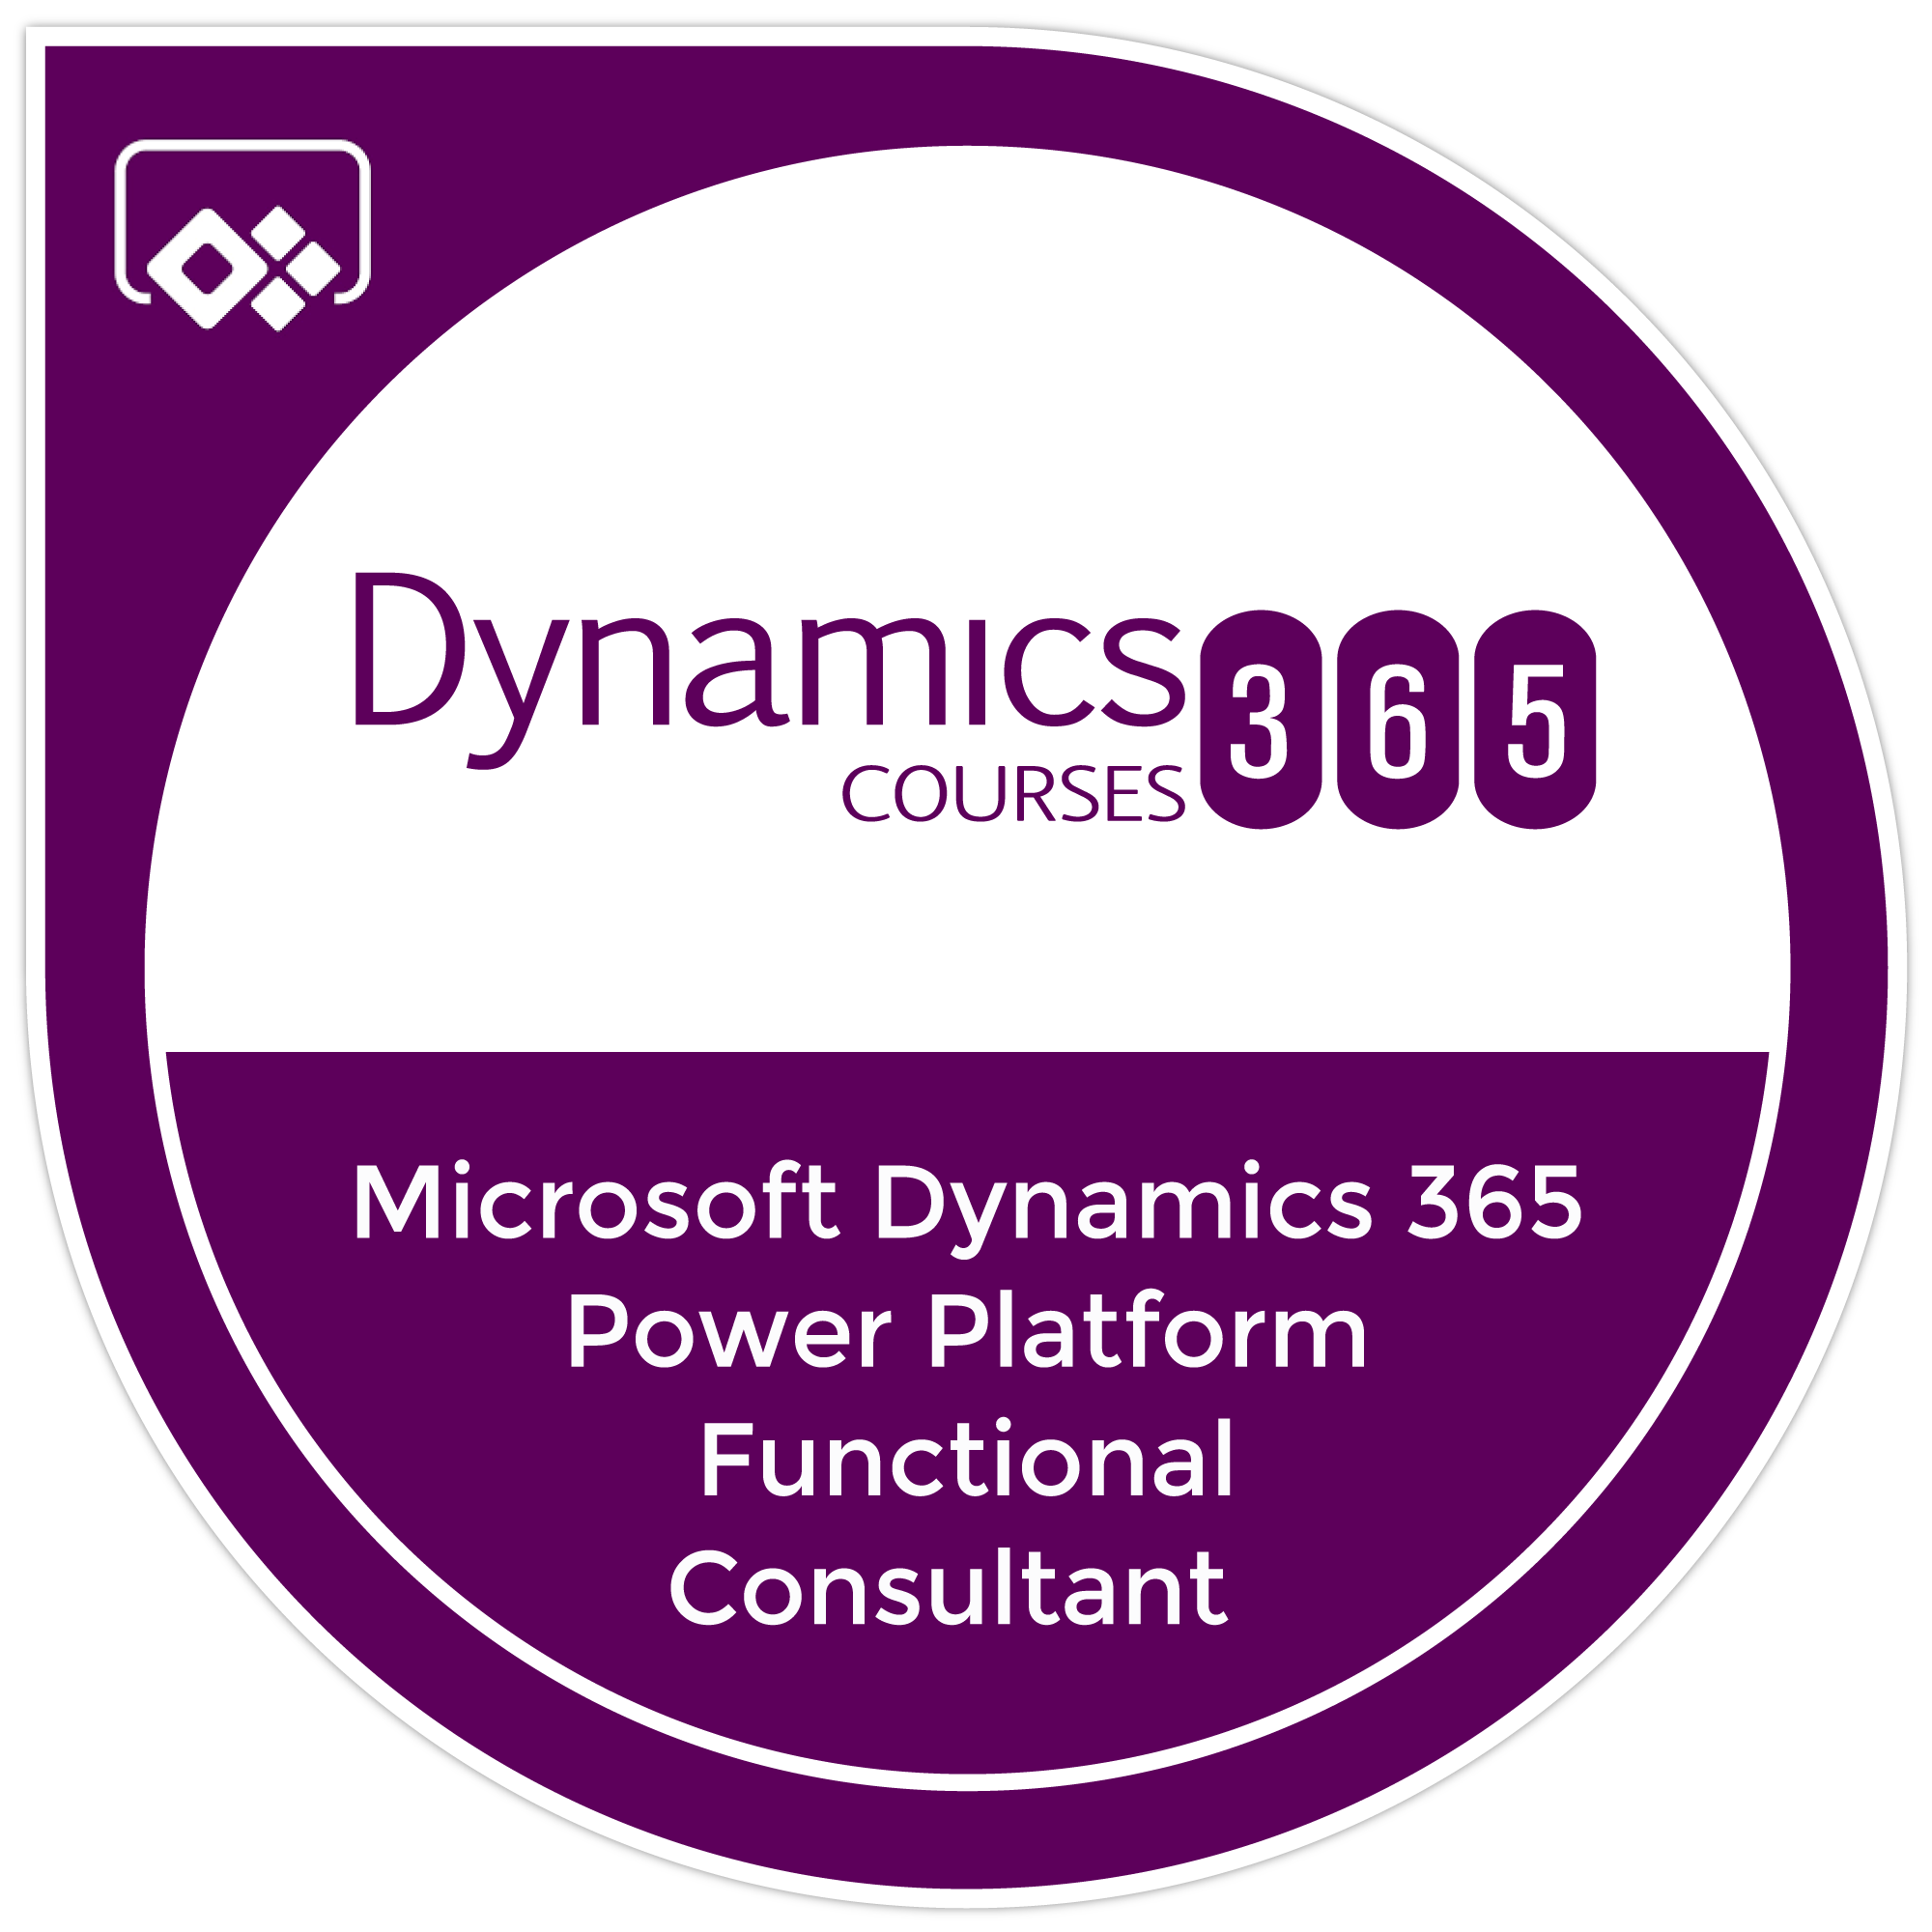 Microsoft Dynamics 365 Power Platform Functional Consultant